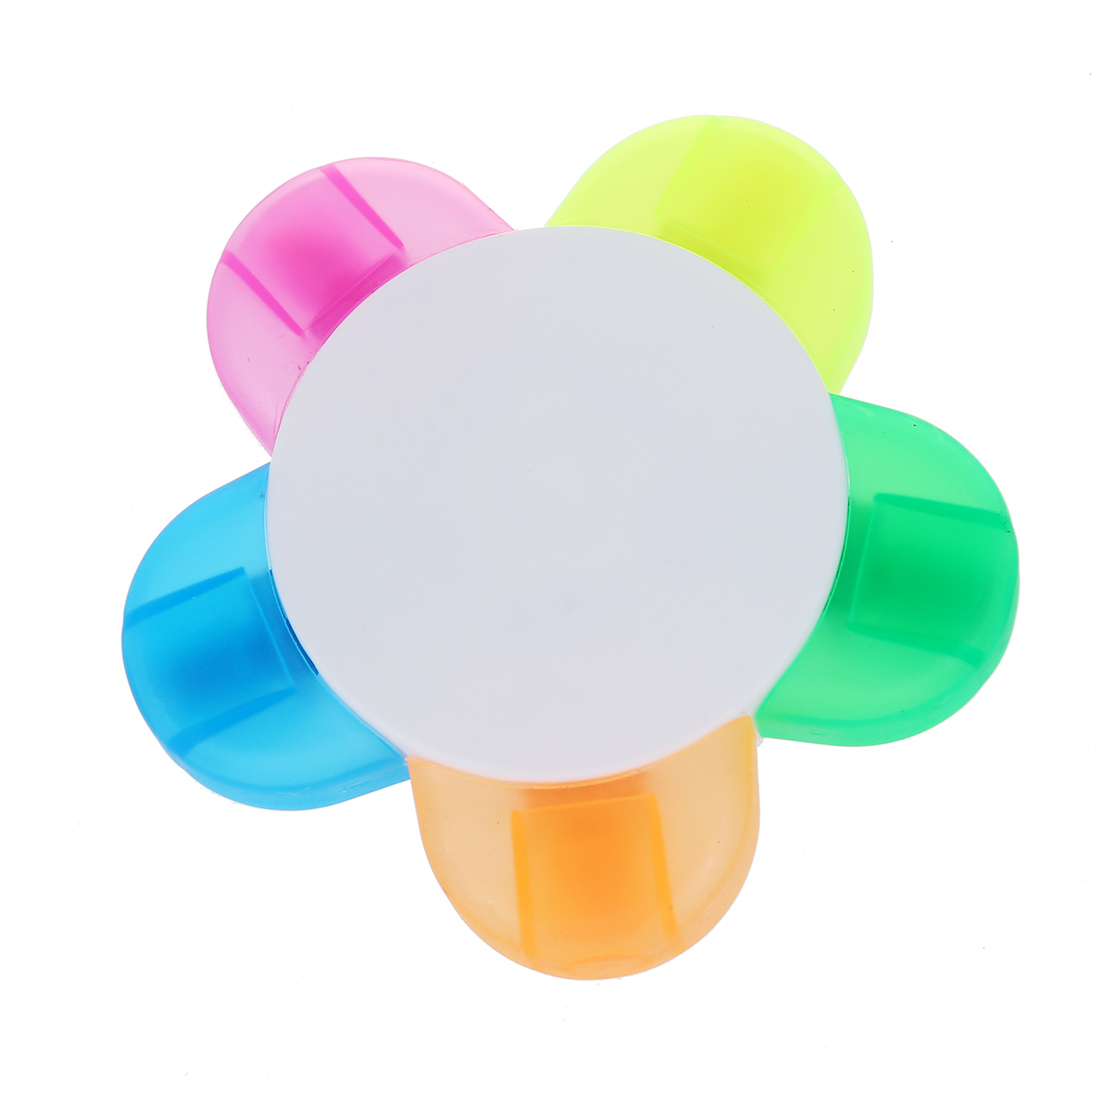 Wholesale 10pcs of 5 color highlighter pen marker pen stationery flower shape (pink, yellow, blue, green, orange)Wholesale 10pcs of 5 color highlighter pen marker pen stationery flower shape (pink, yellow, blue, green, orange)